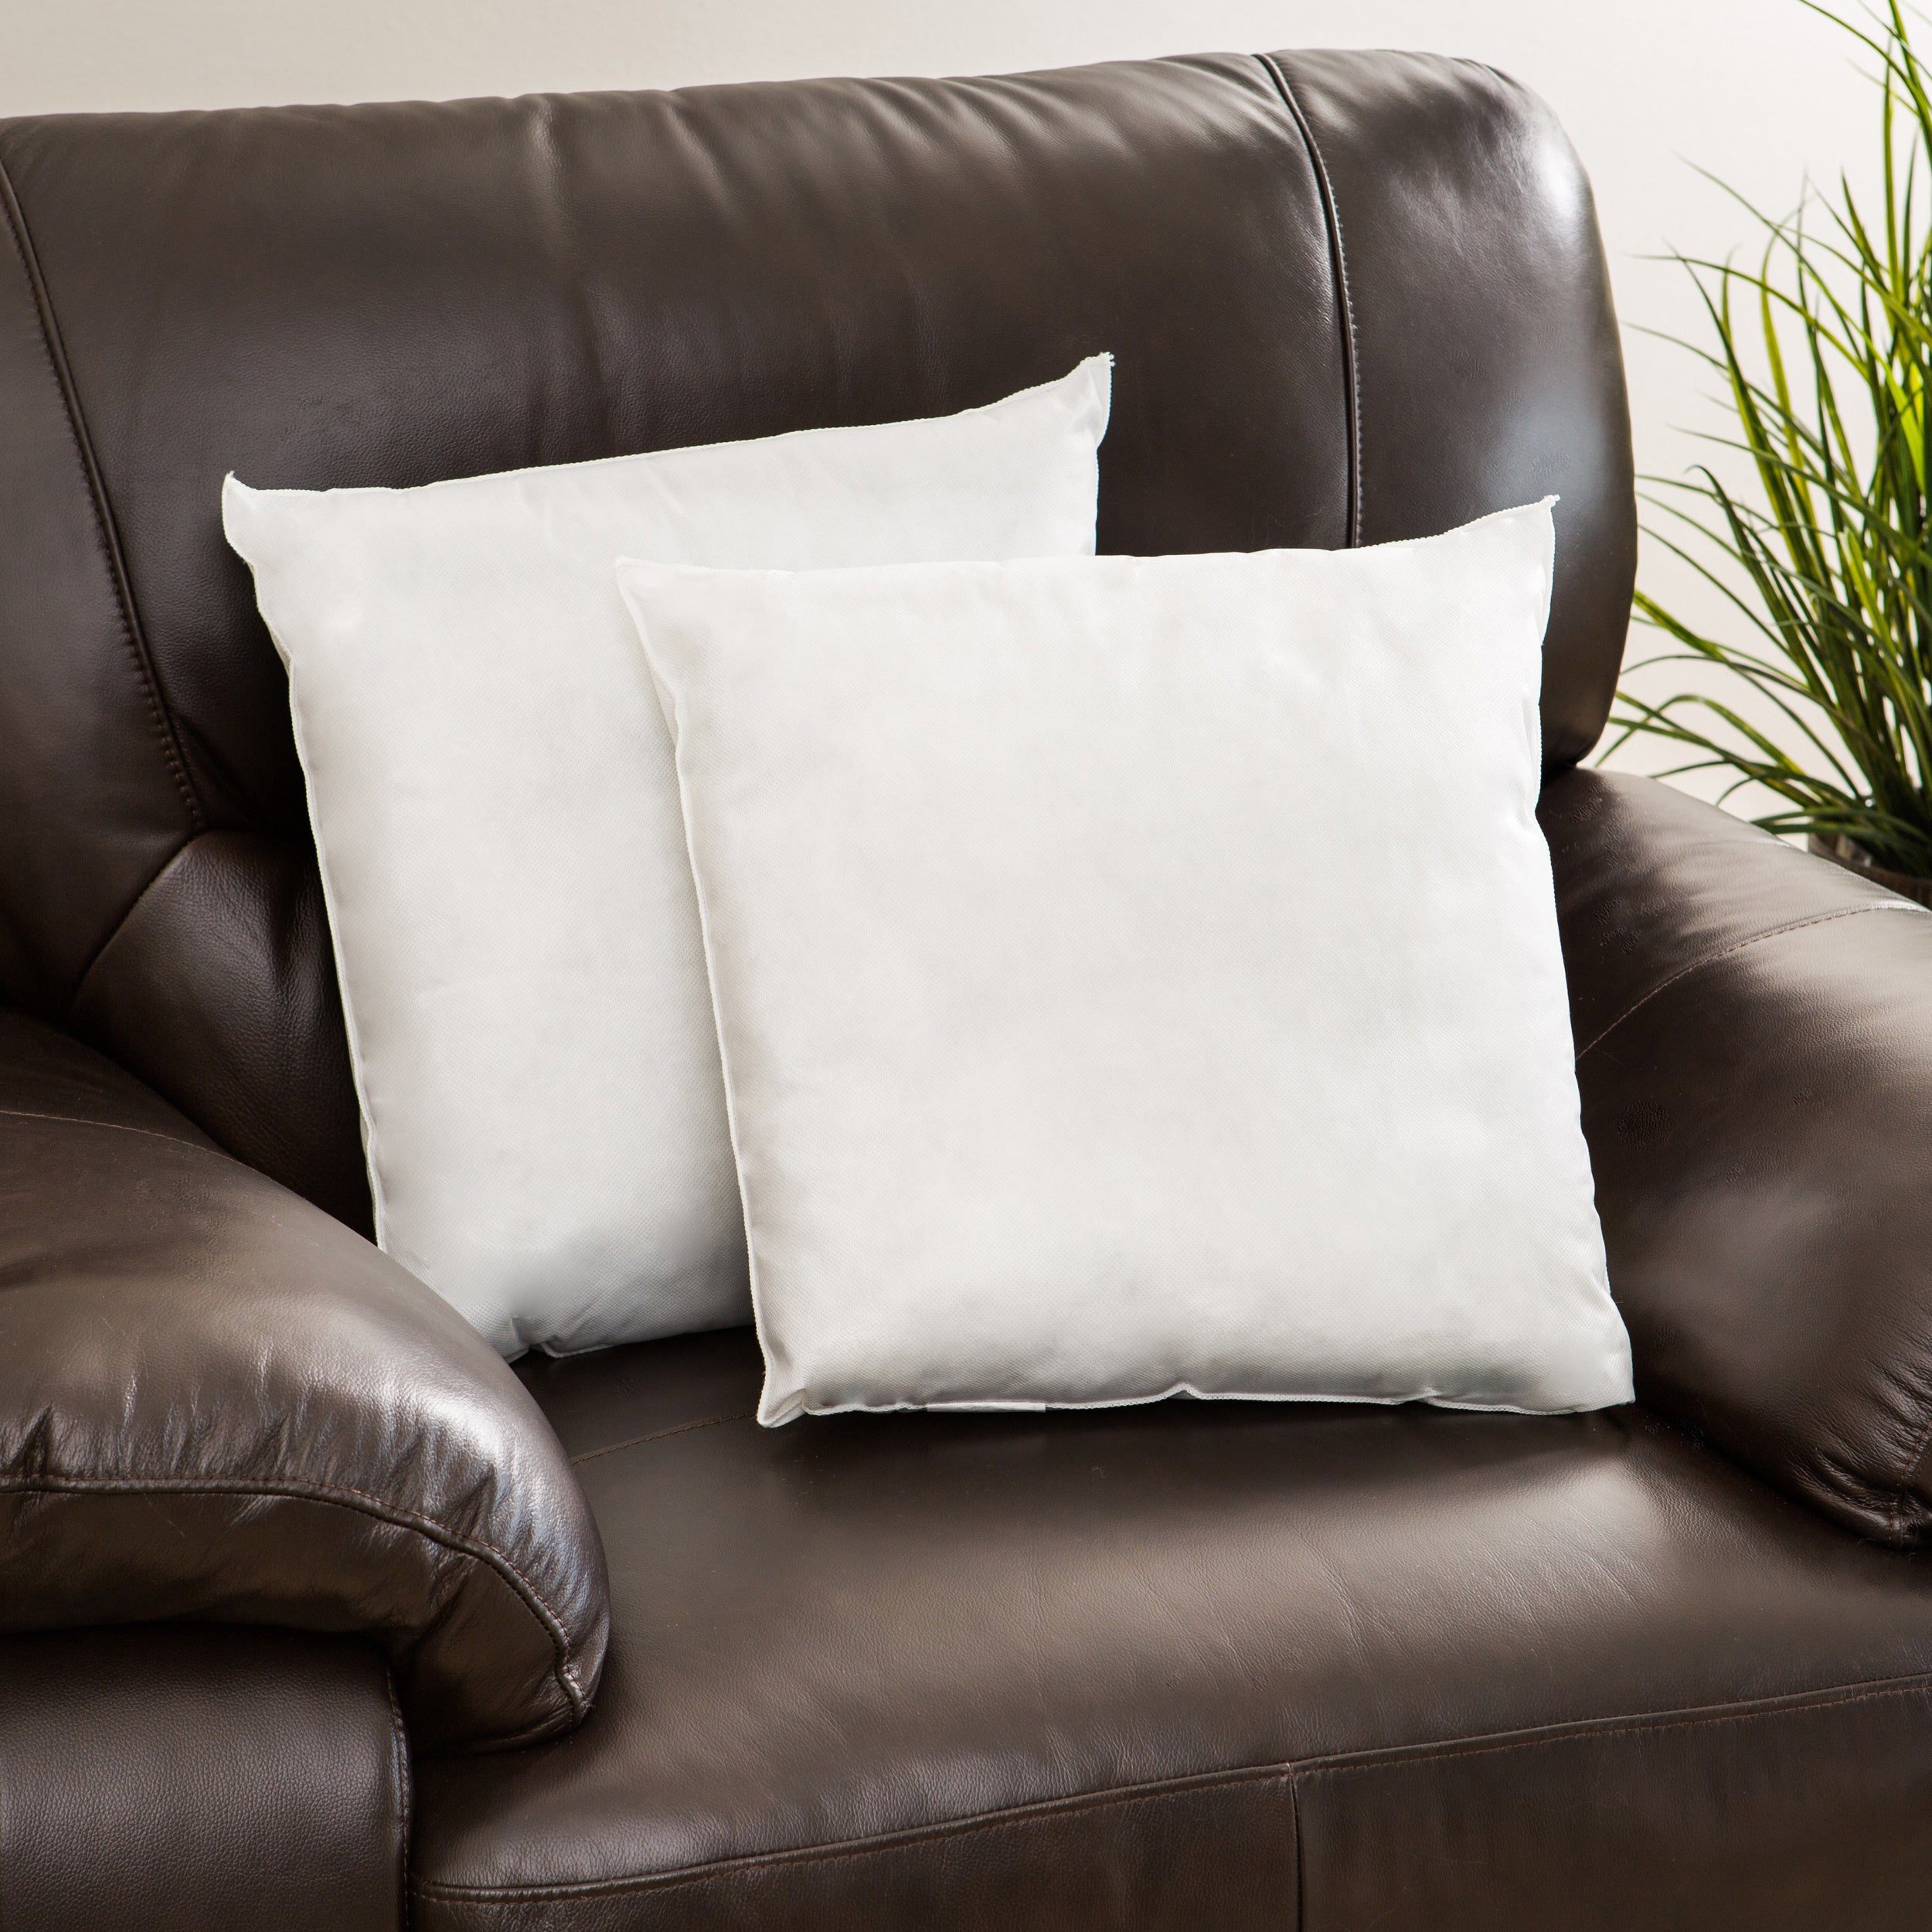 Pellon Decorative Pillow Inserts (set of 17) - Free Shipping On ...